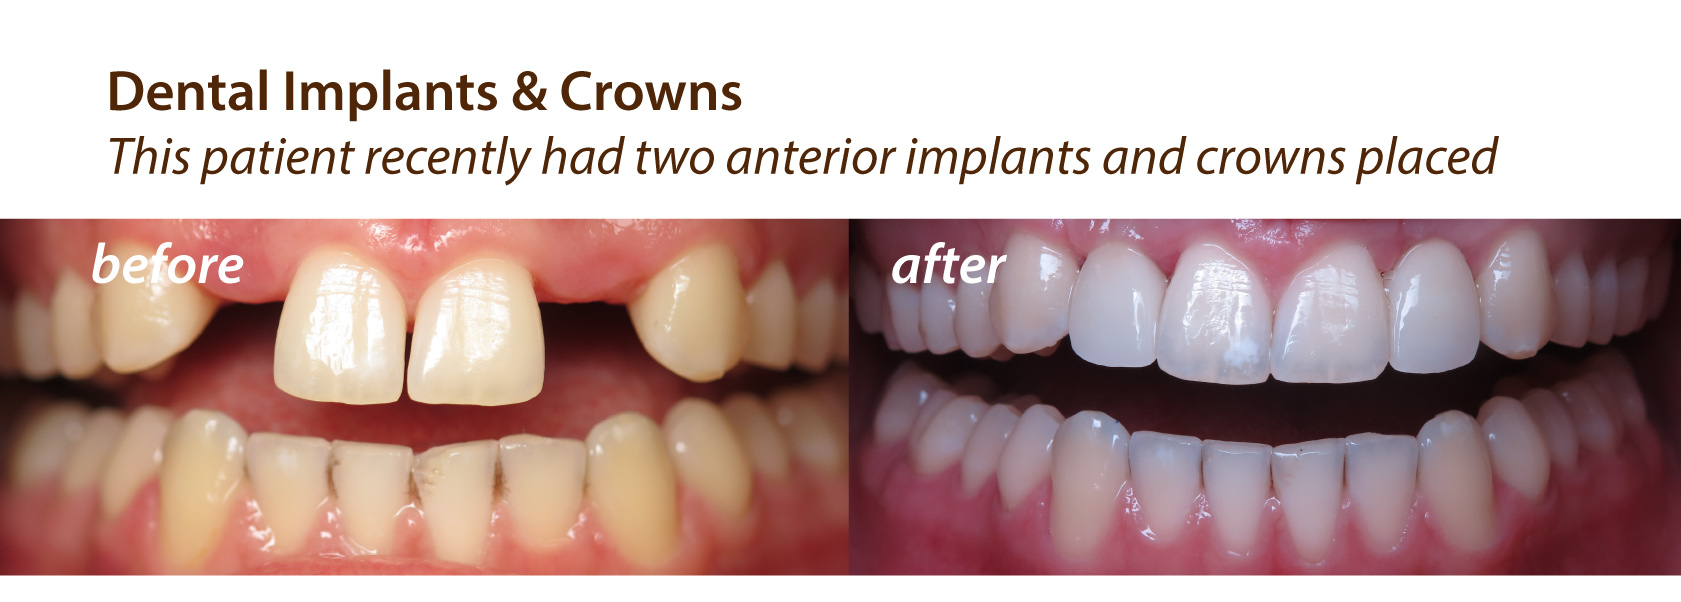 Before and After Implants & Crowns at Olympic Village Dental